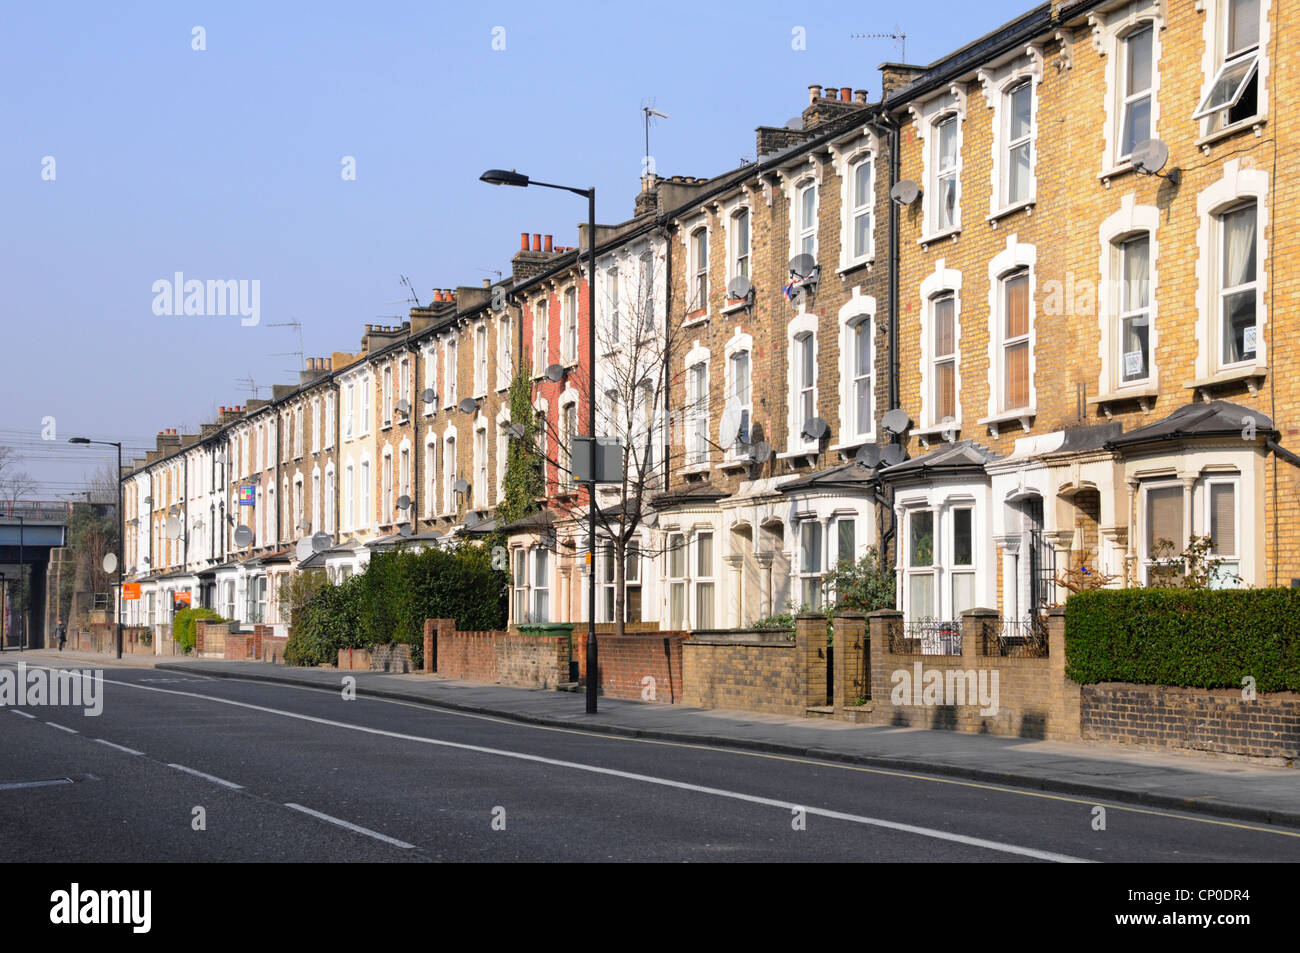 Long row of old three storey terraced flats & apartments without parked cars in Hackney London close to town centre Stock Photo